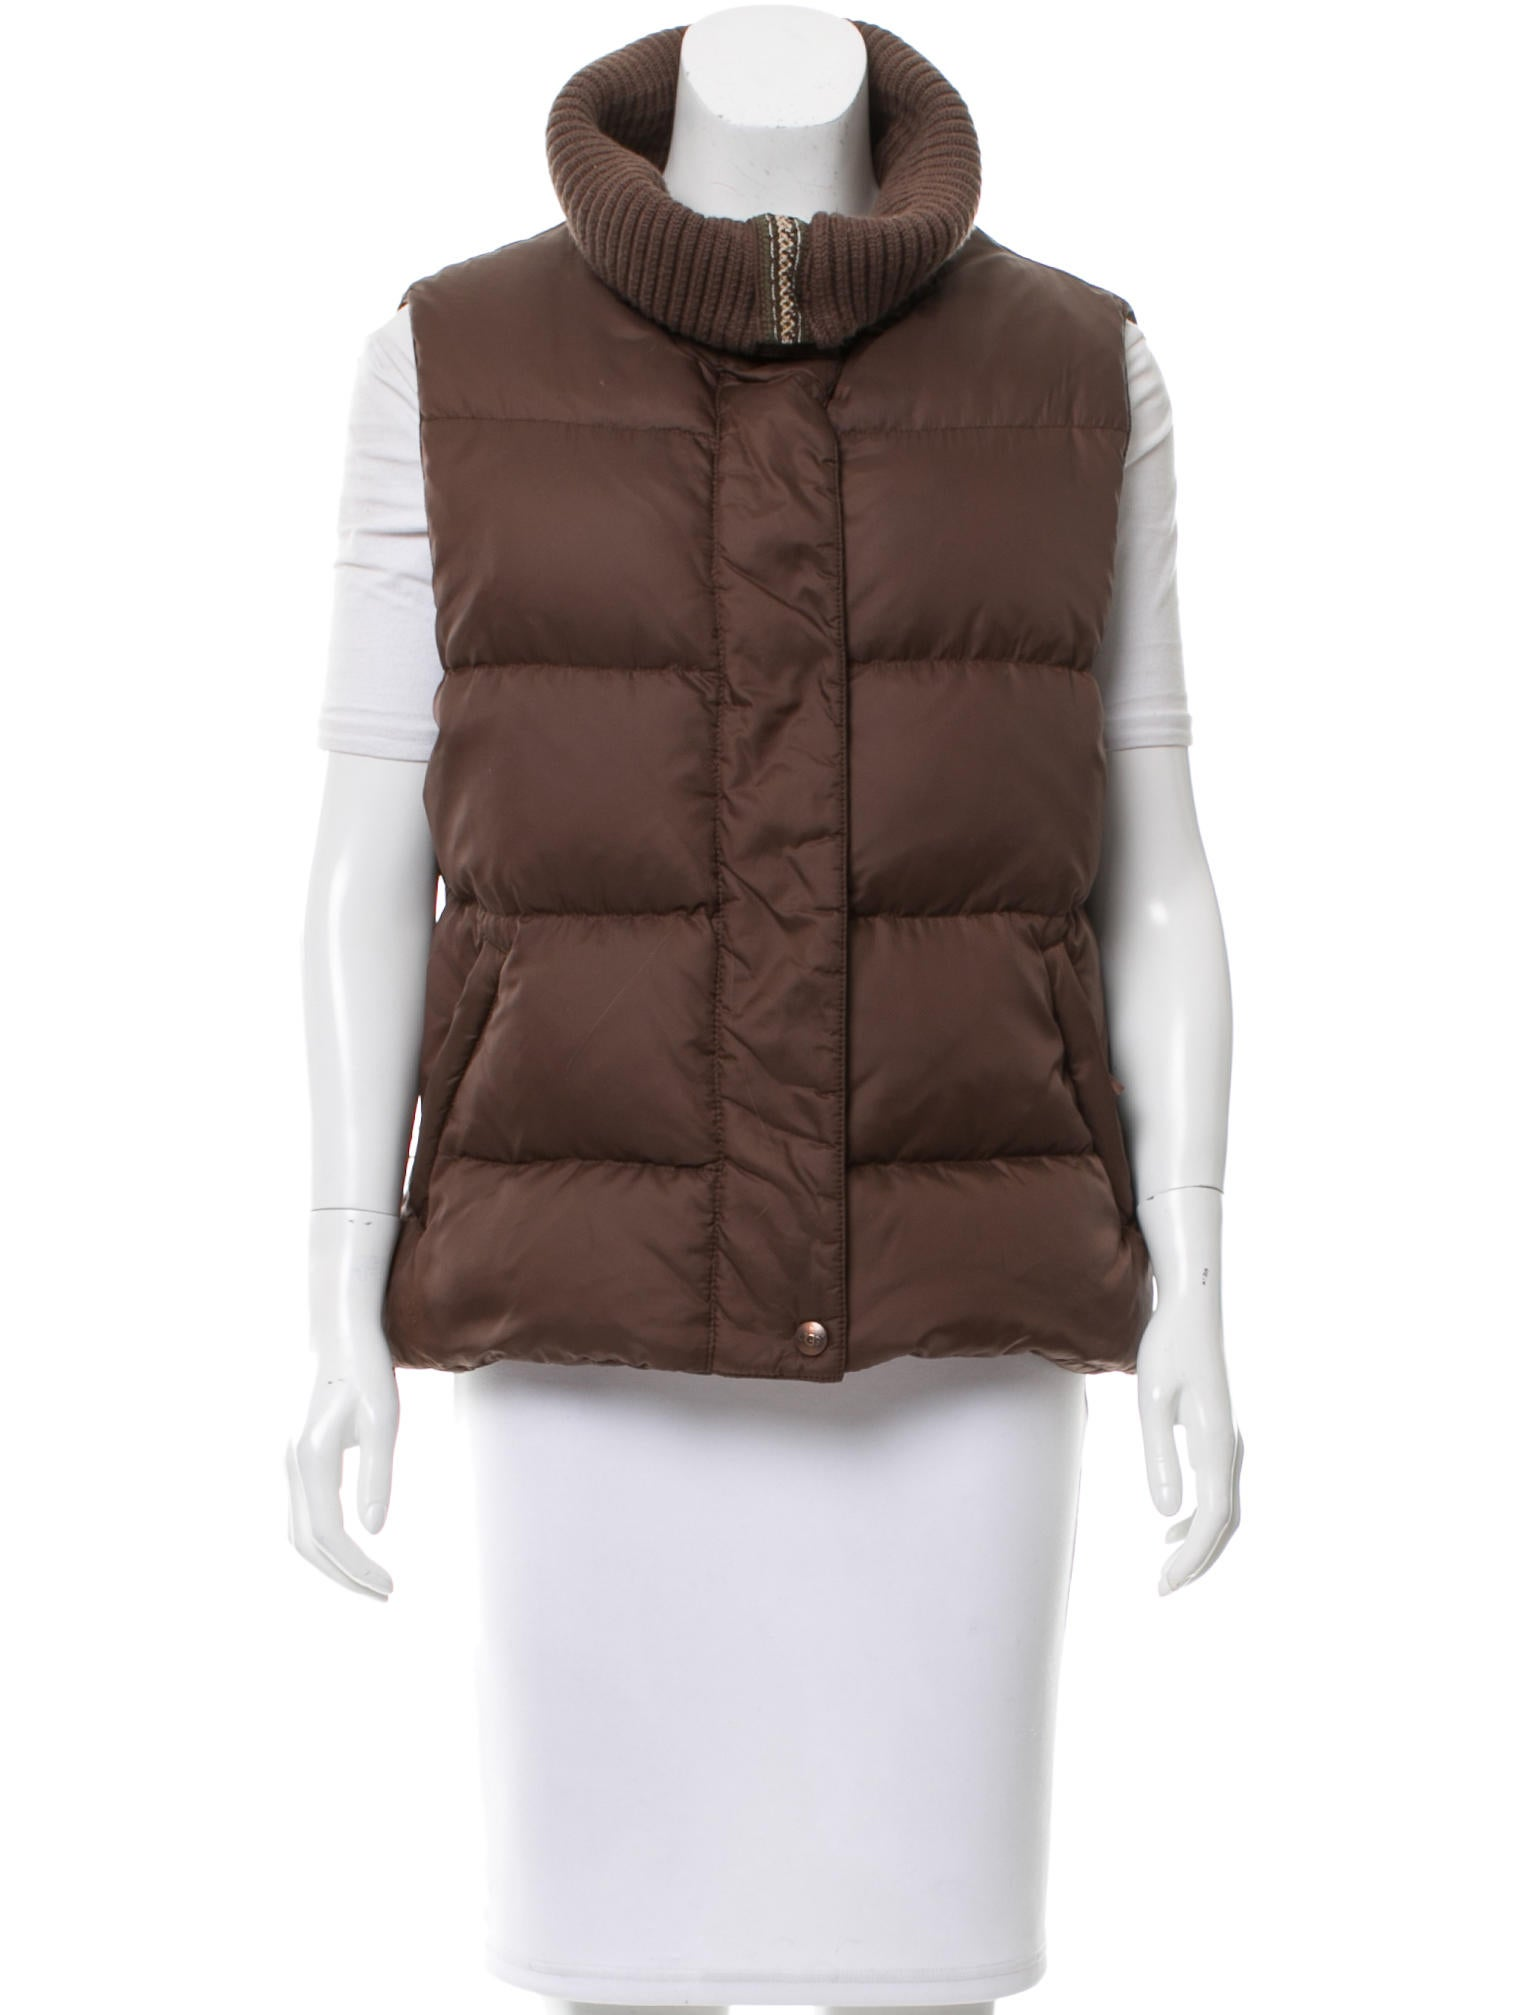 UGG Australia Shawl Collar Down Vest - Clothing - WUUGG20958  02155a060